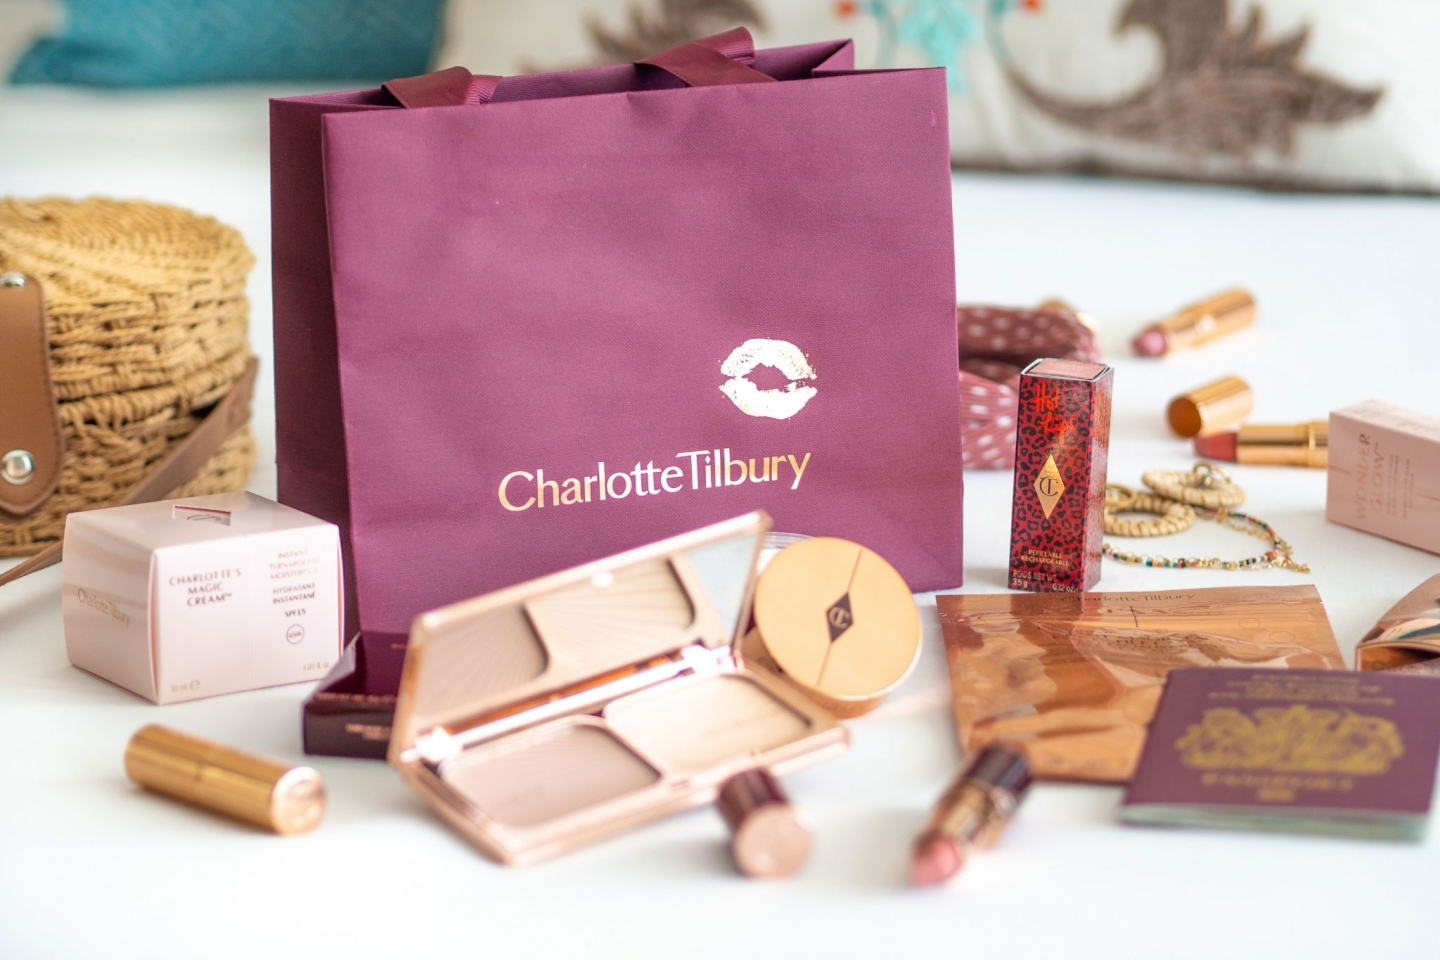 Charlotte Tilbury Launches In World Duty Free And It's A Travellers Dream